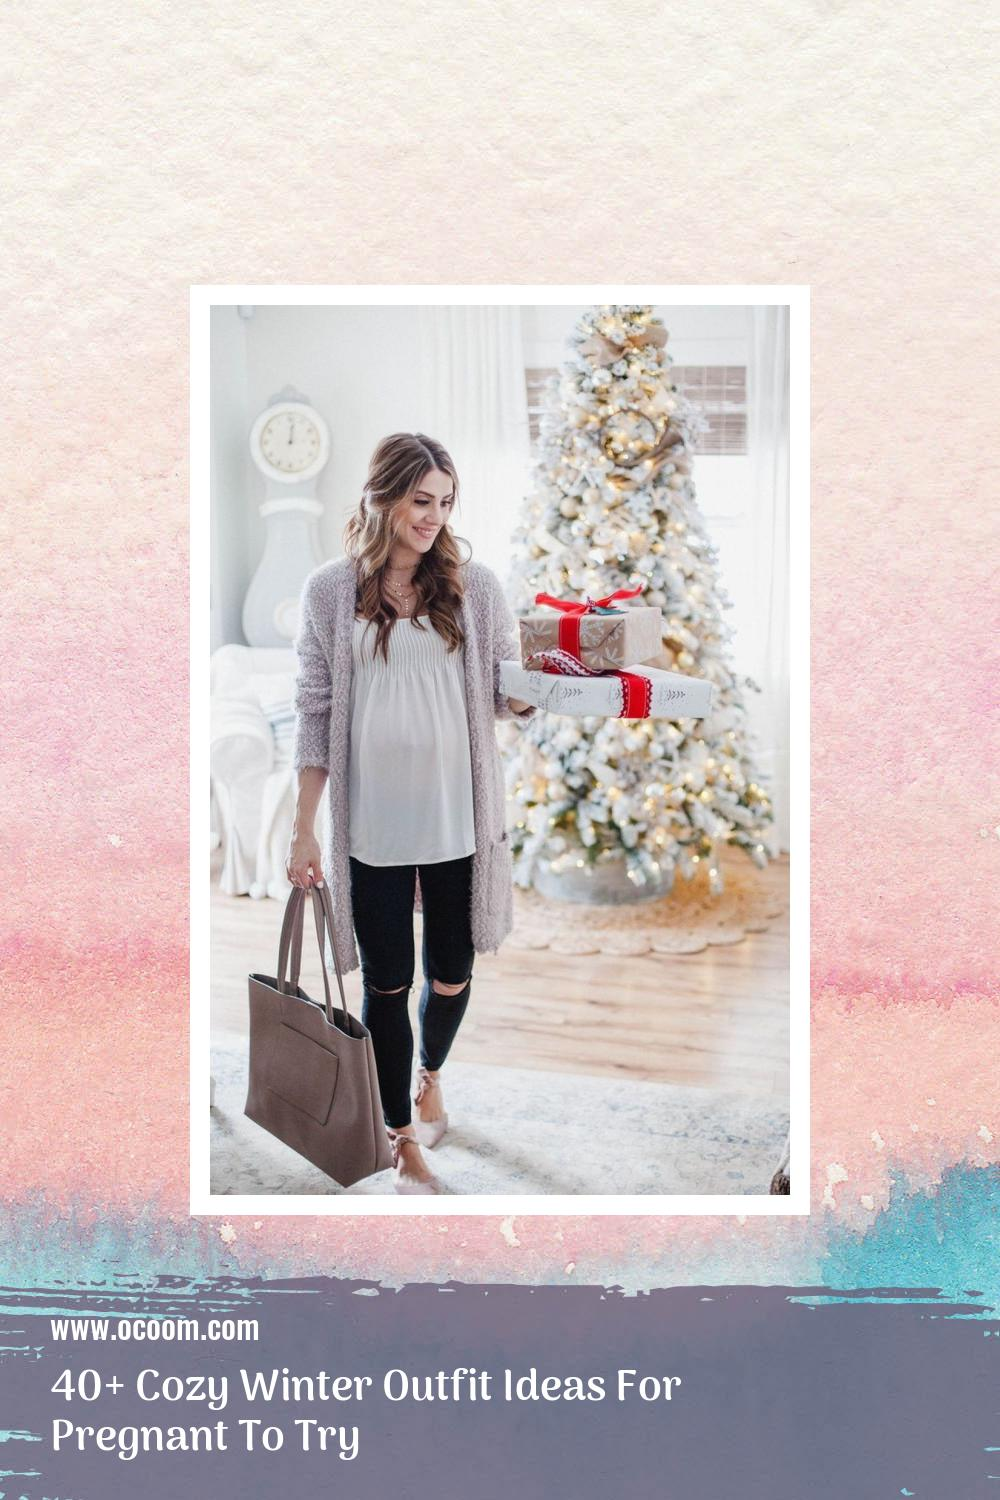 40+ Cozy Winter Outfit Ideas For Pregnant To Try 7